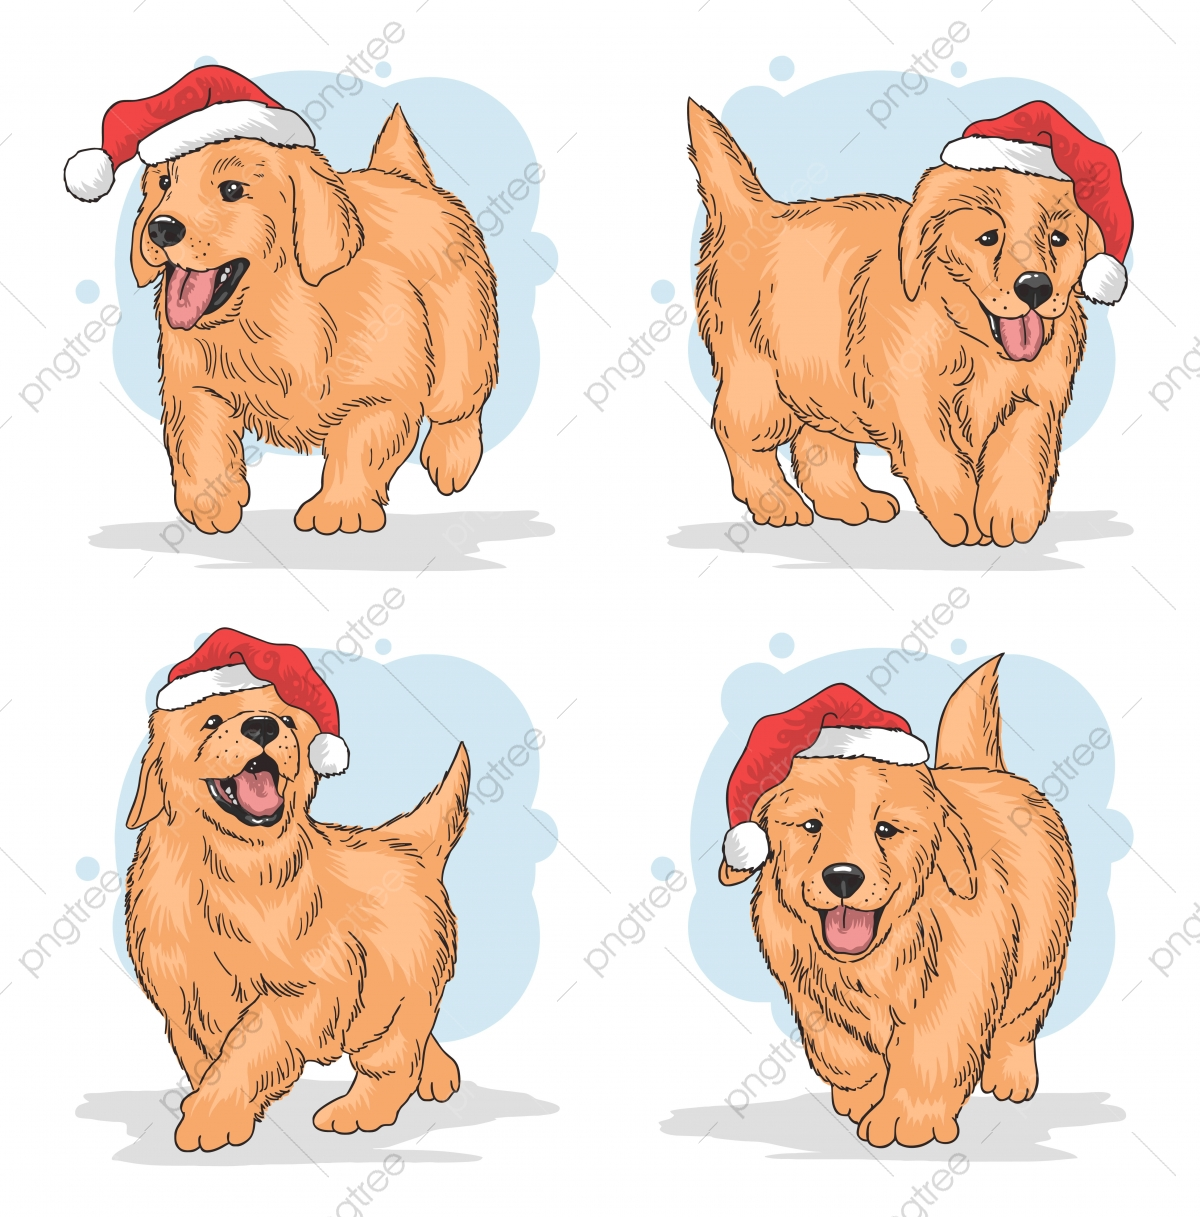 Christmas Puppy Claus Hat Vector Animal Art Background Png And Vector With Transparent Background For Free Download